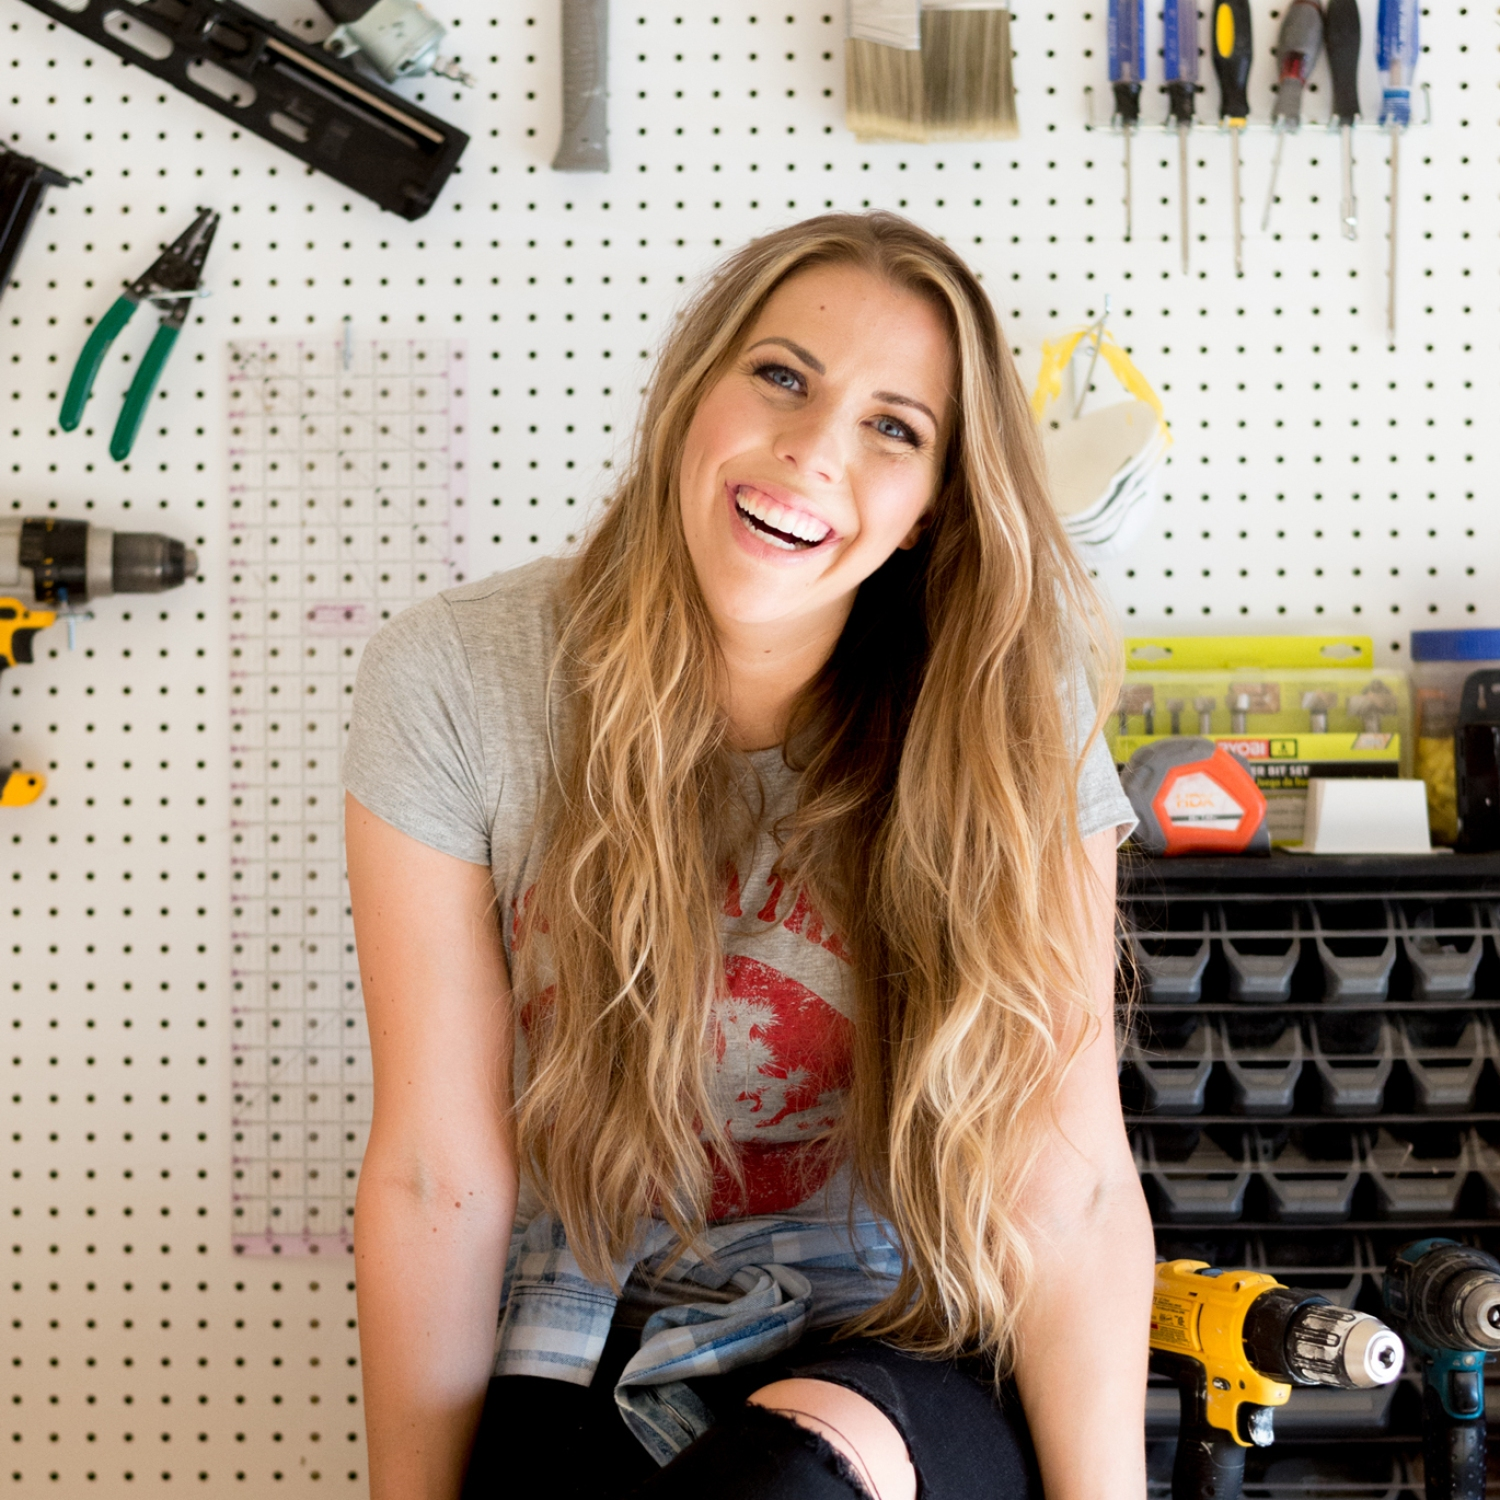 Mandi Gubler sitting on a work bench